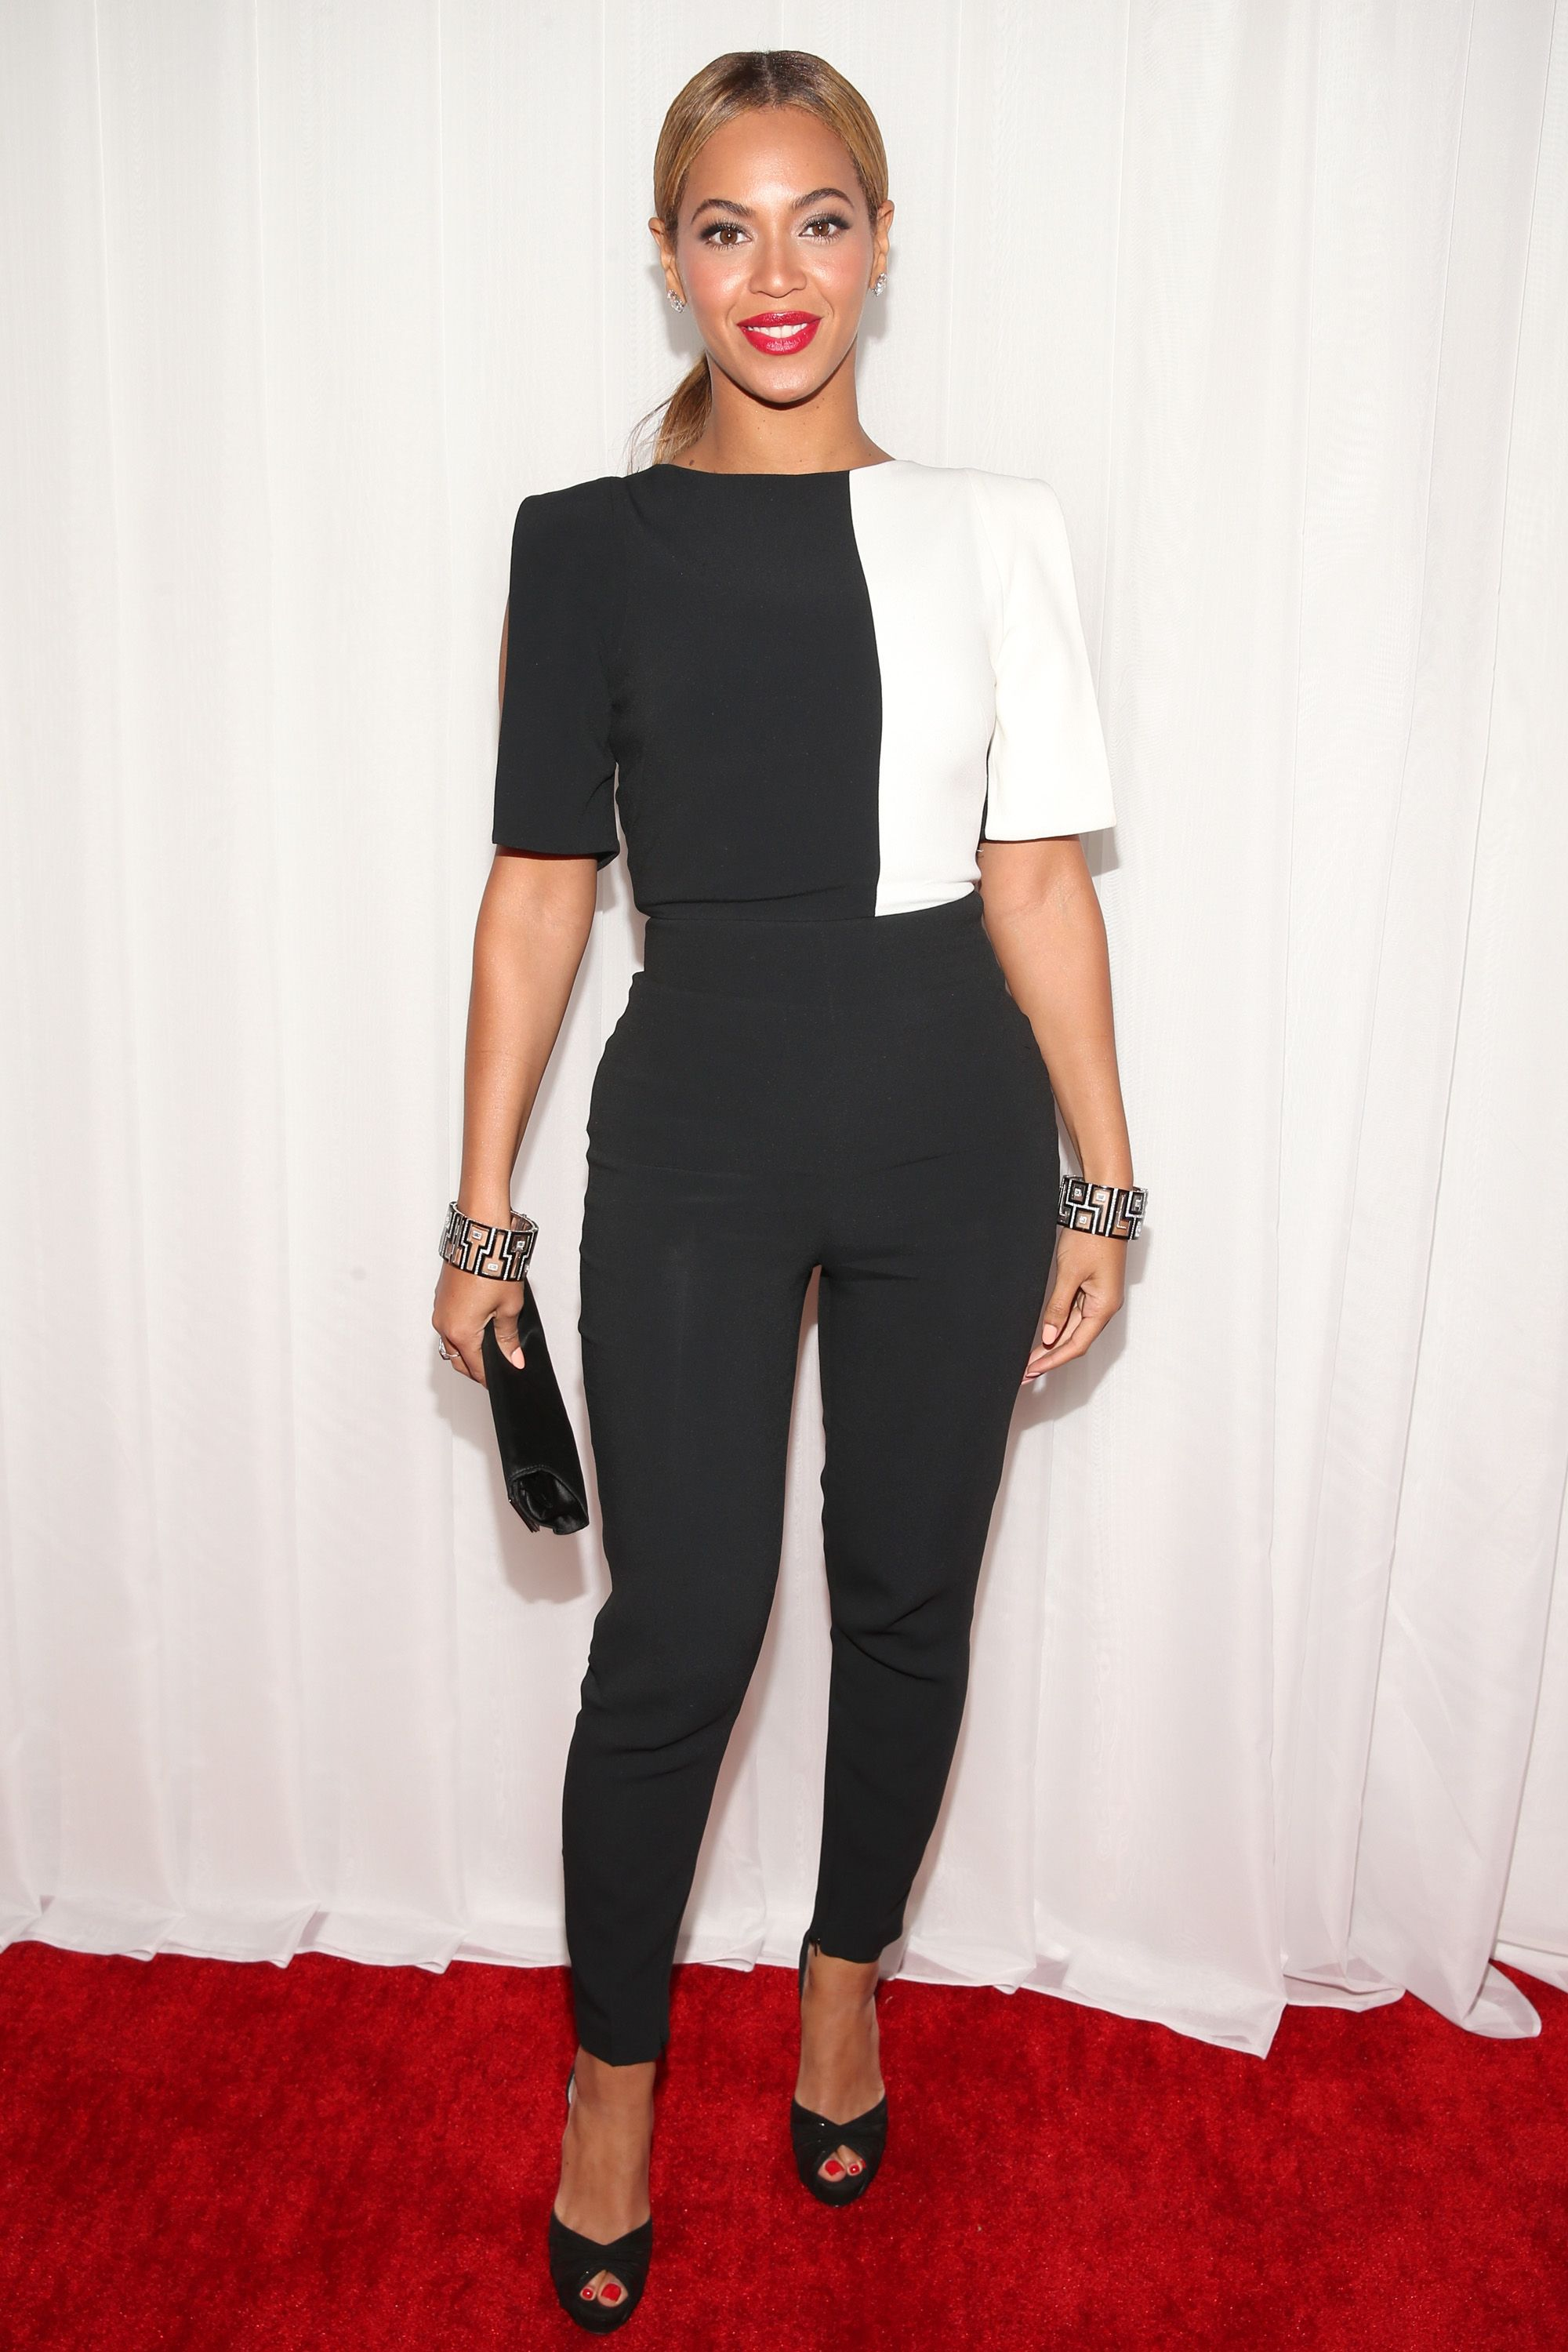 afba9bfad789 Beyoncé Brings a Black-and-White Jumpsuit to the Grammys